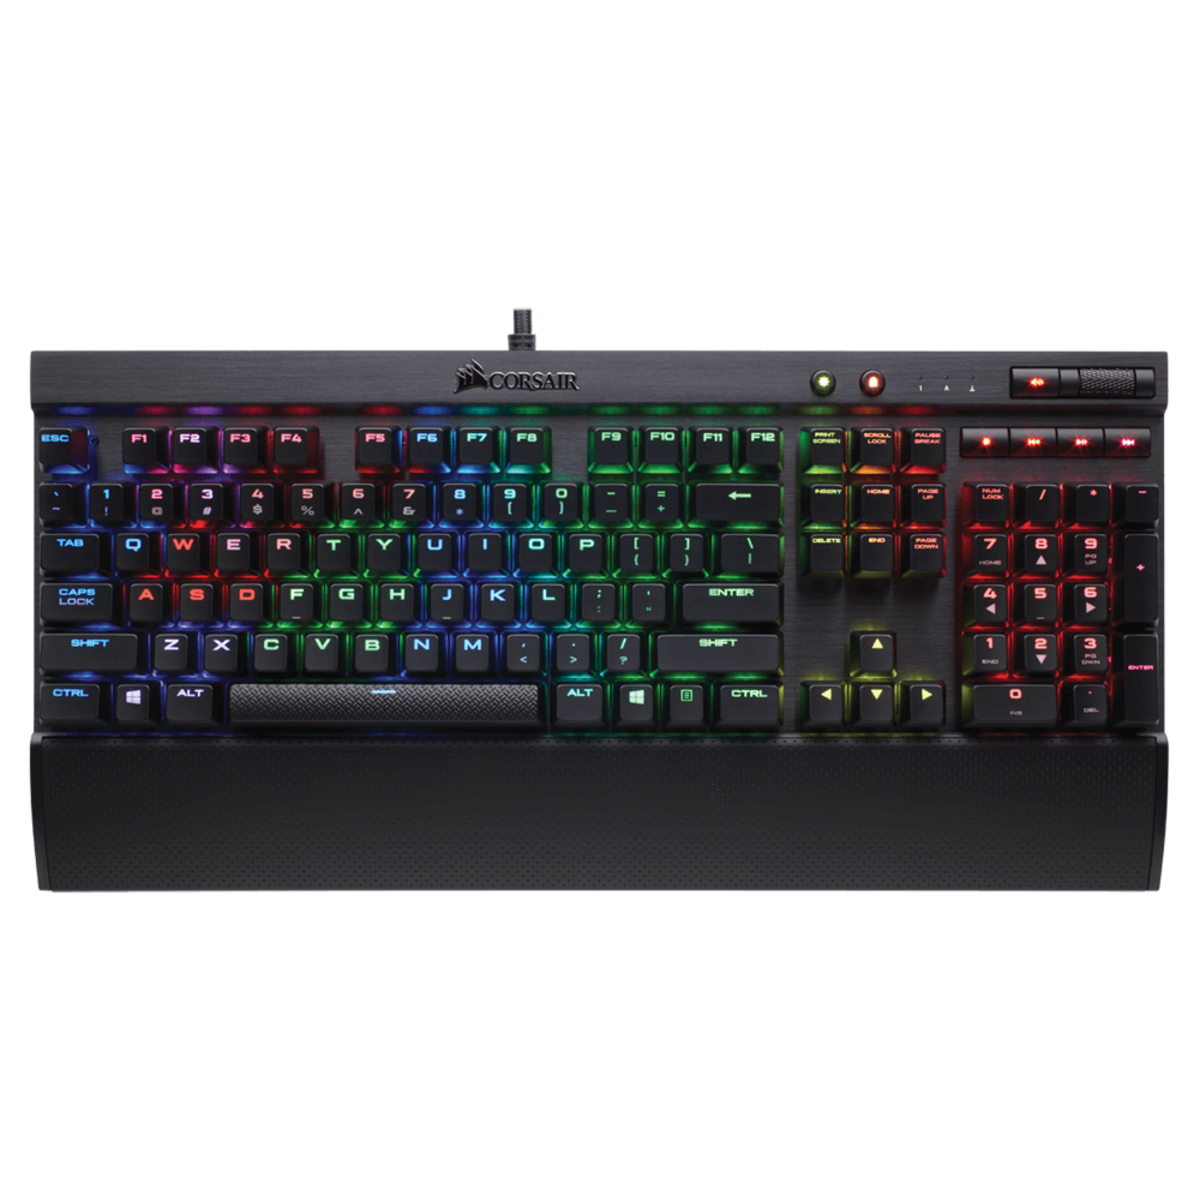 Corsair K70 LUX RGB Mechanical Gaming Keyboard - MX SILENT